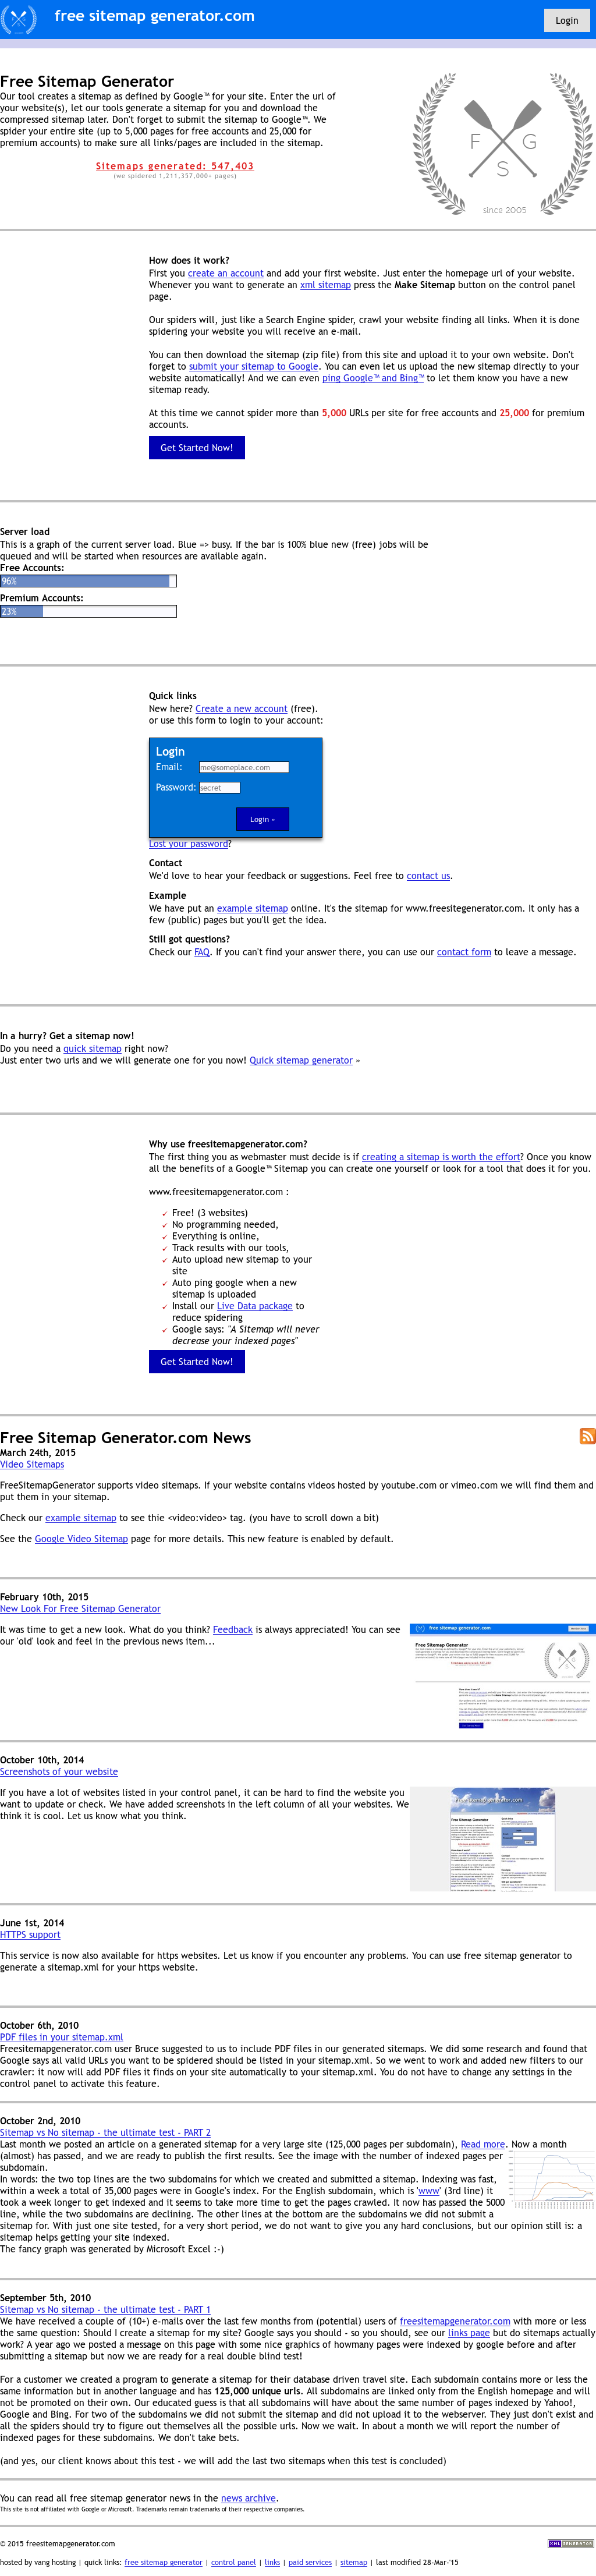 Free Sitemap Generator Competitors, Revenue and Employees